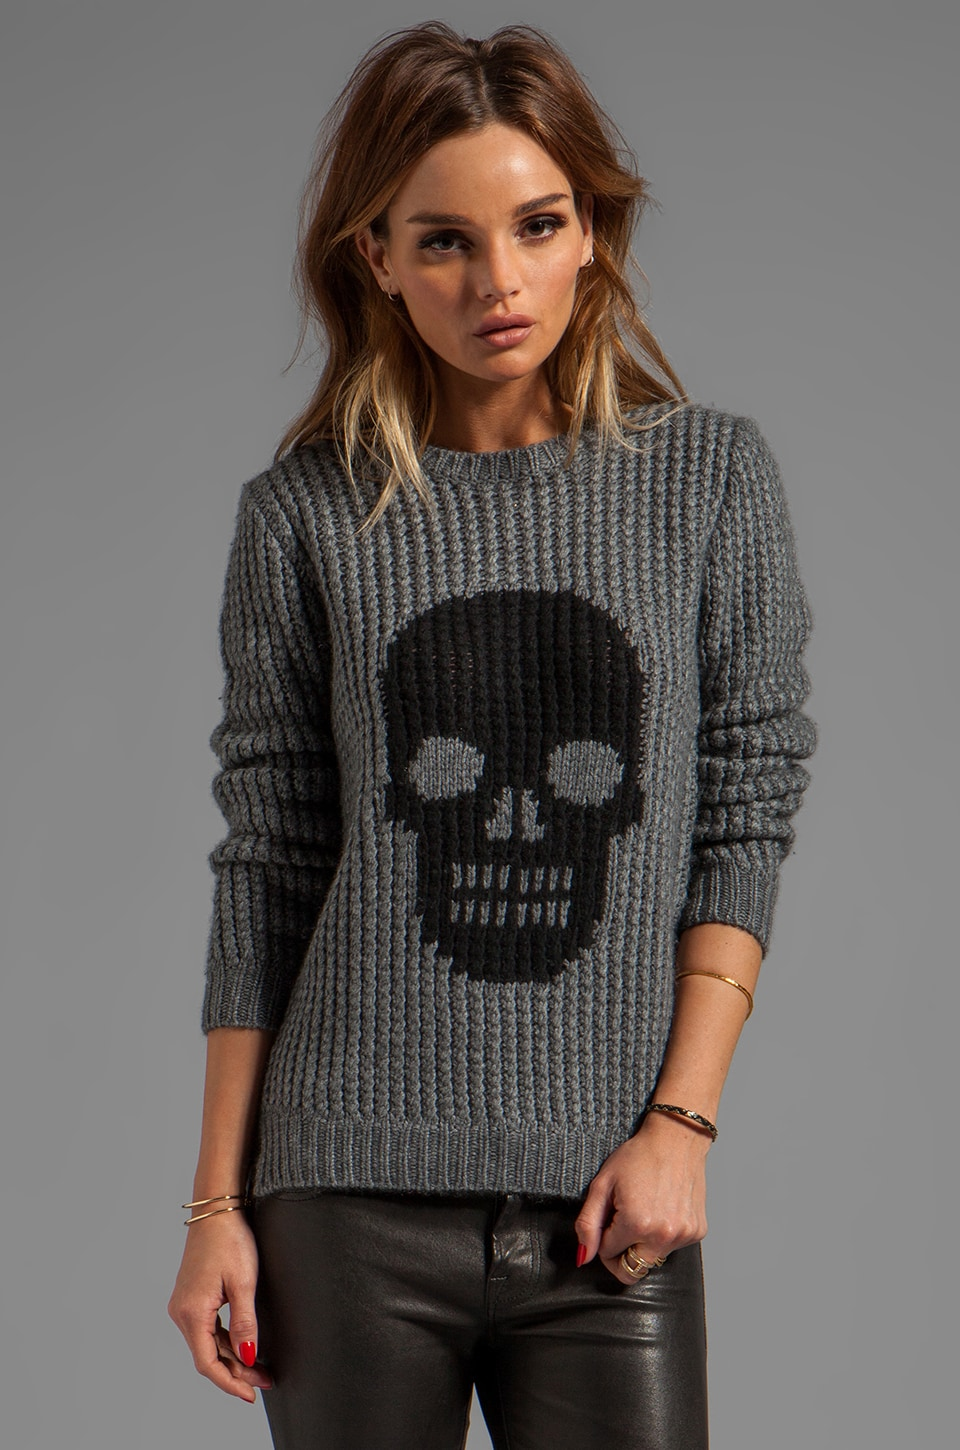 Autumn Cashmere Handknit Skull Crew Sweater in Flannel/Ebony